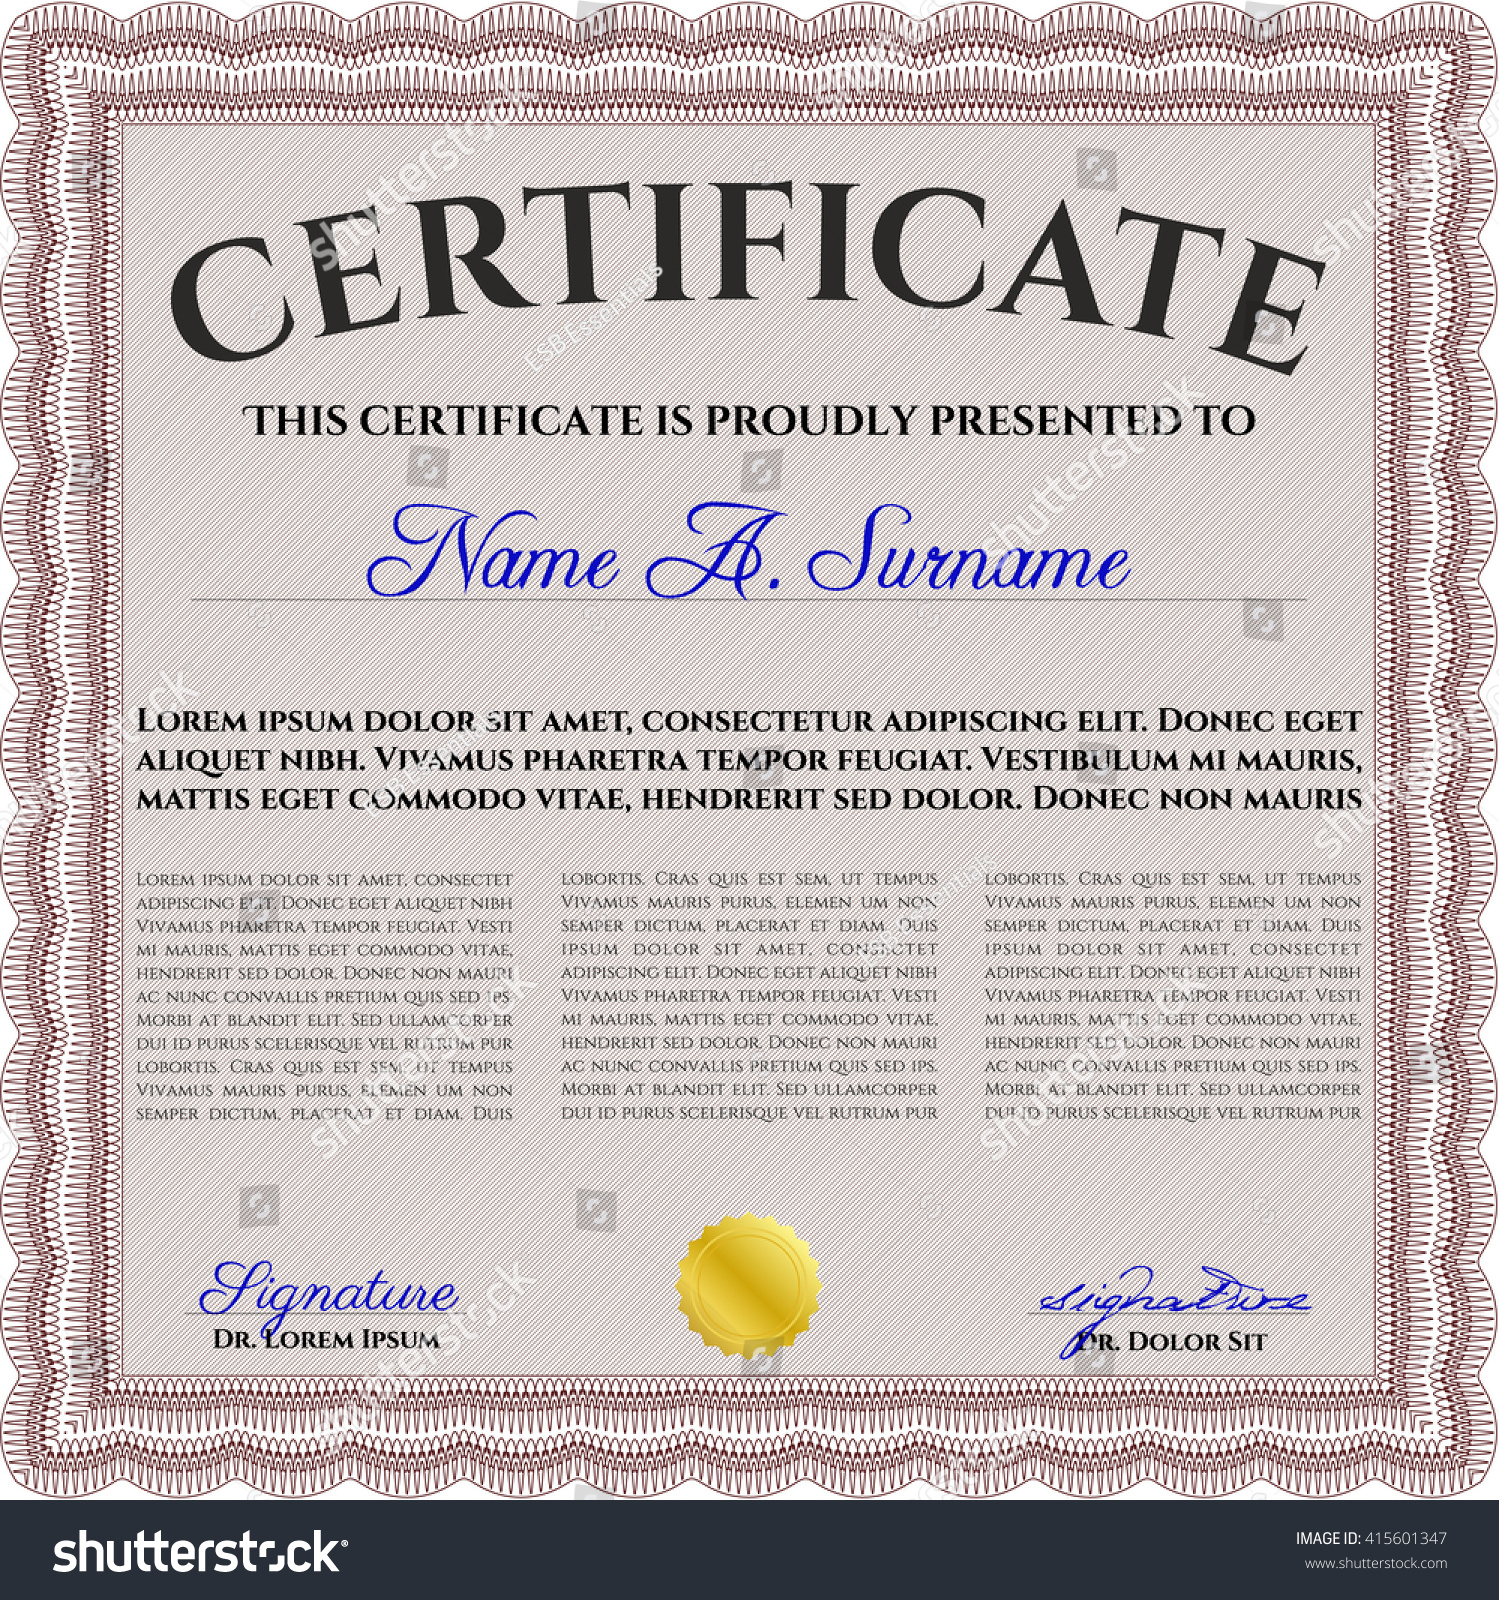 Fantastic gold medal certificate template contemporary example gold medal certificate template gallery templates example free alramifo Choice Image